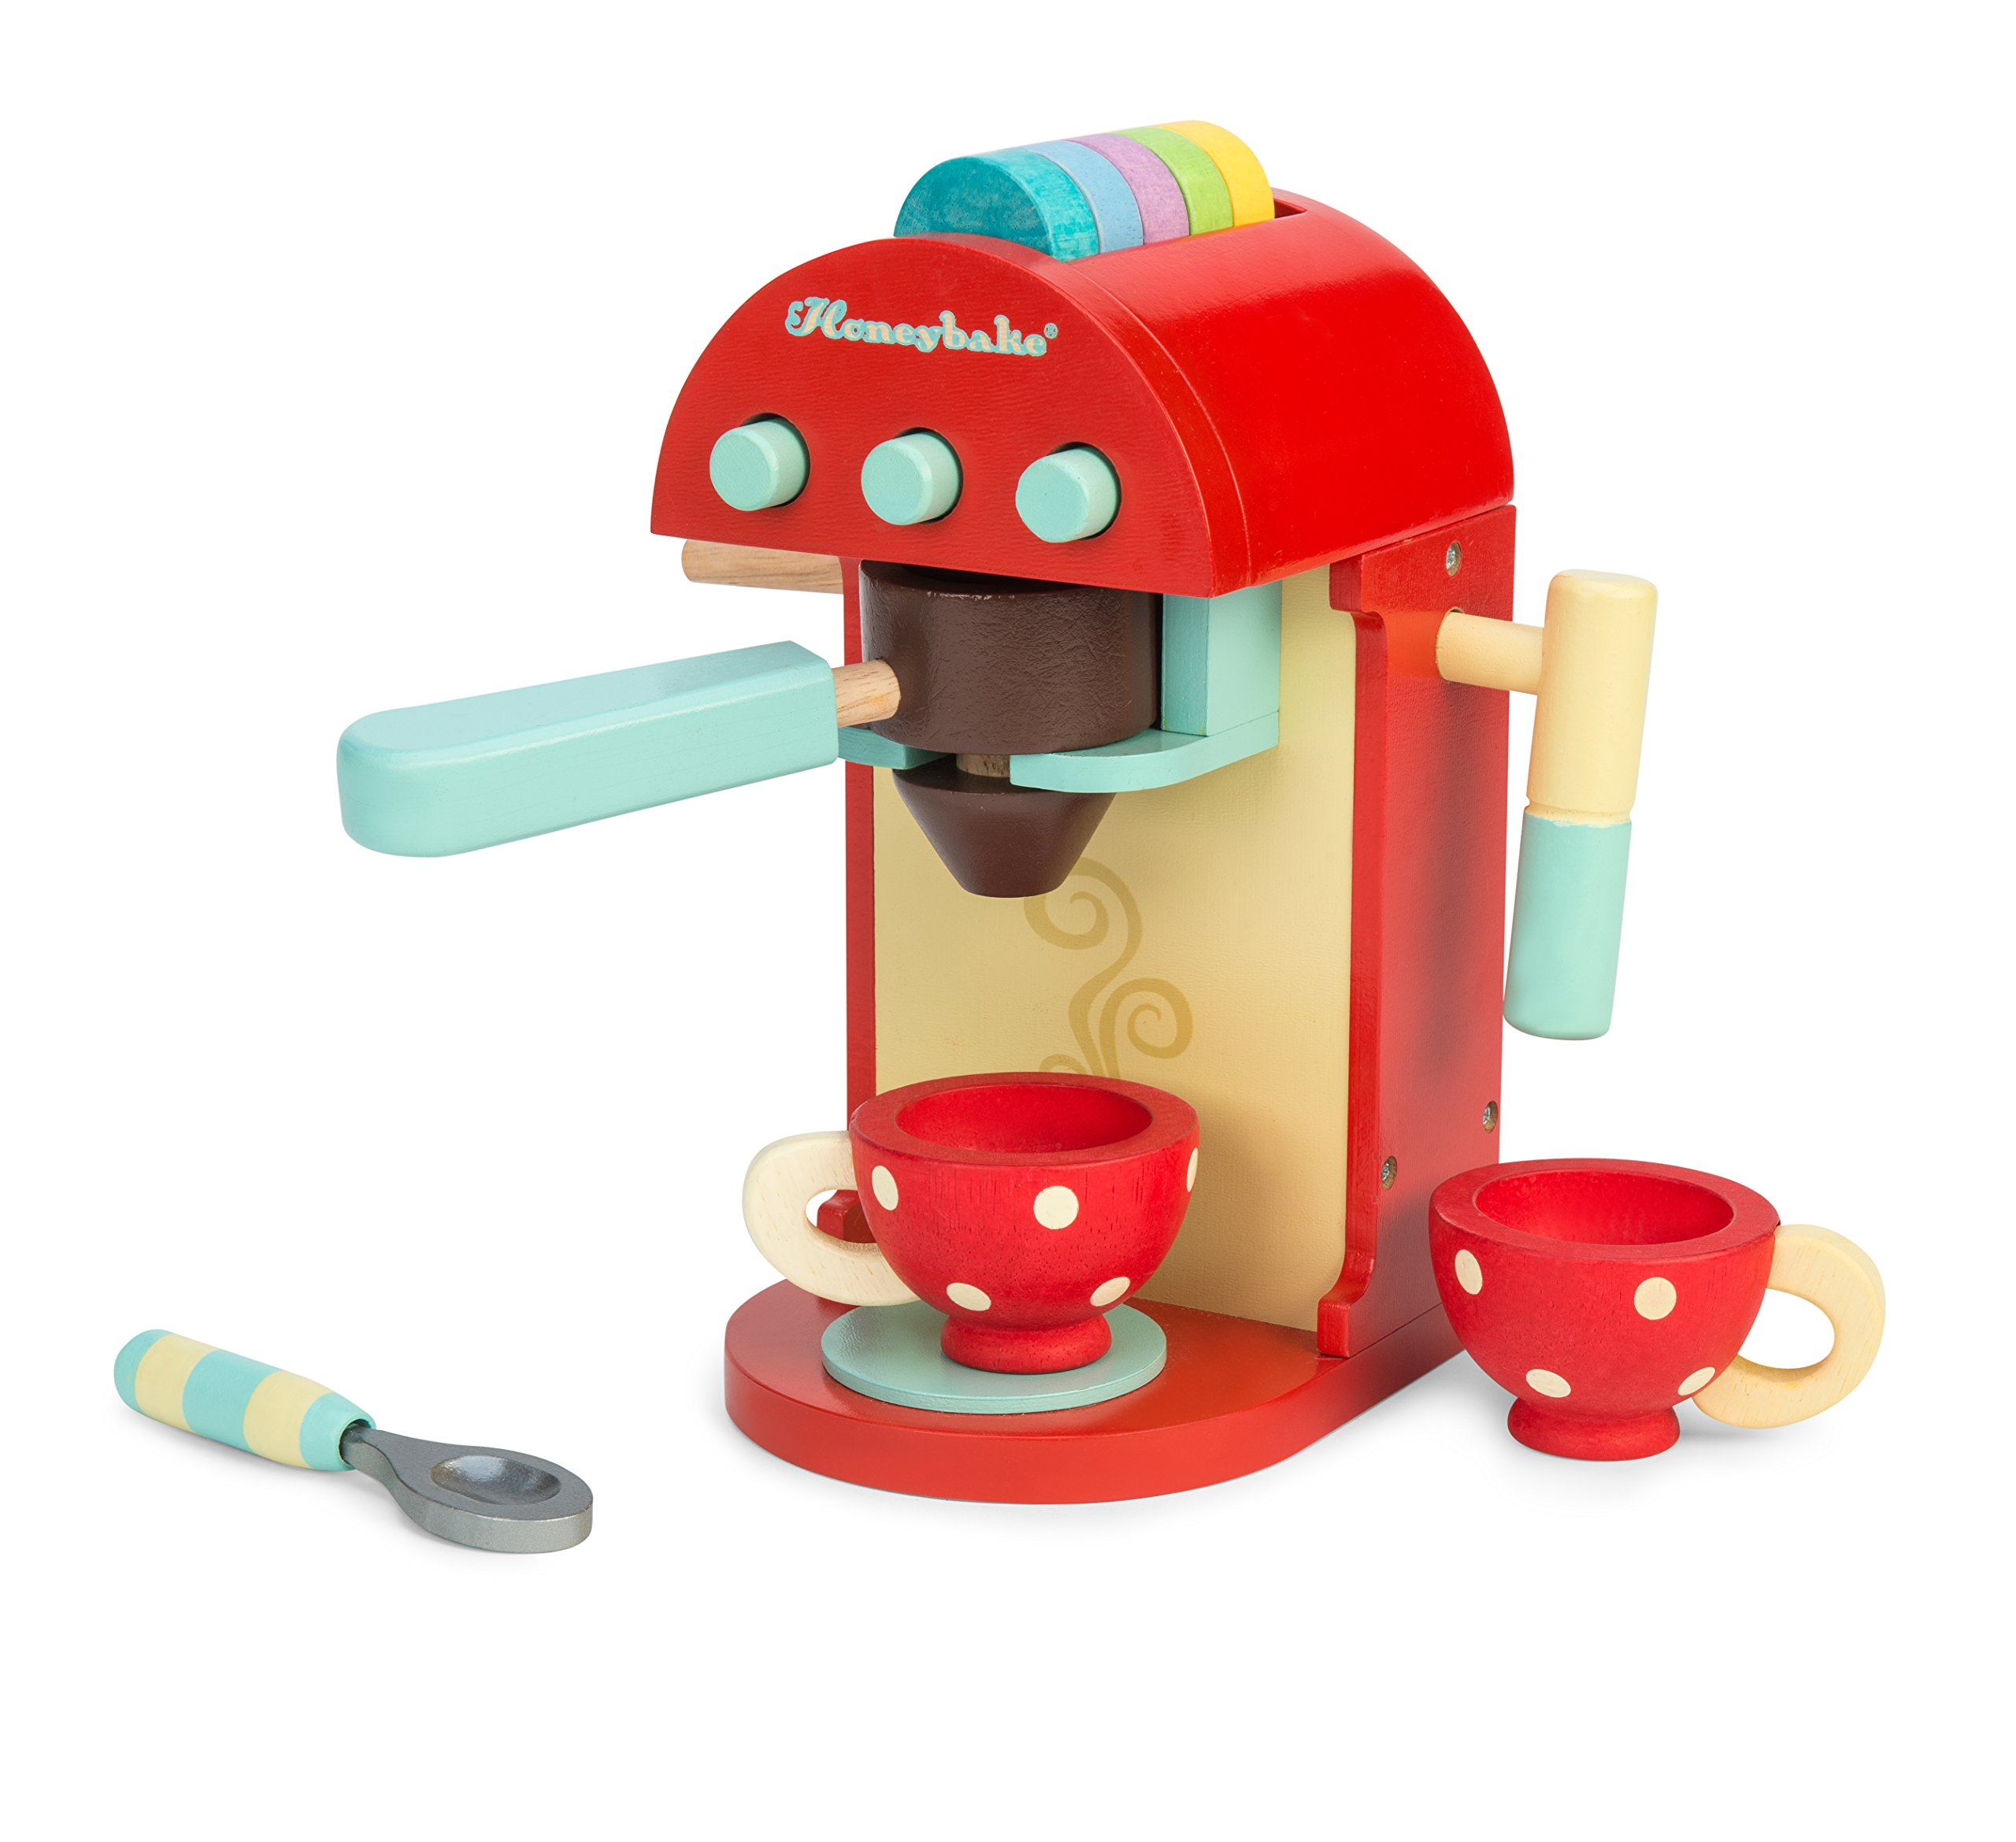 Le Toy Van Honeybake Collection-Cafe Machine Premium Wooden Toys for Kids Ages 3 Years & Up by Le Toy Van